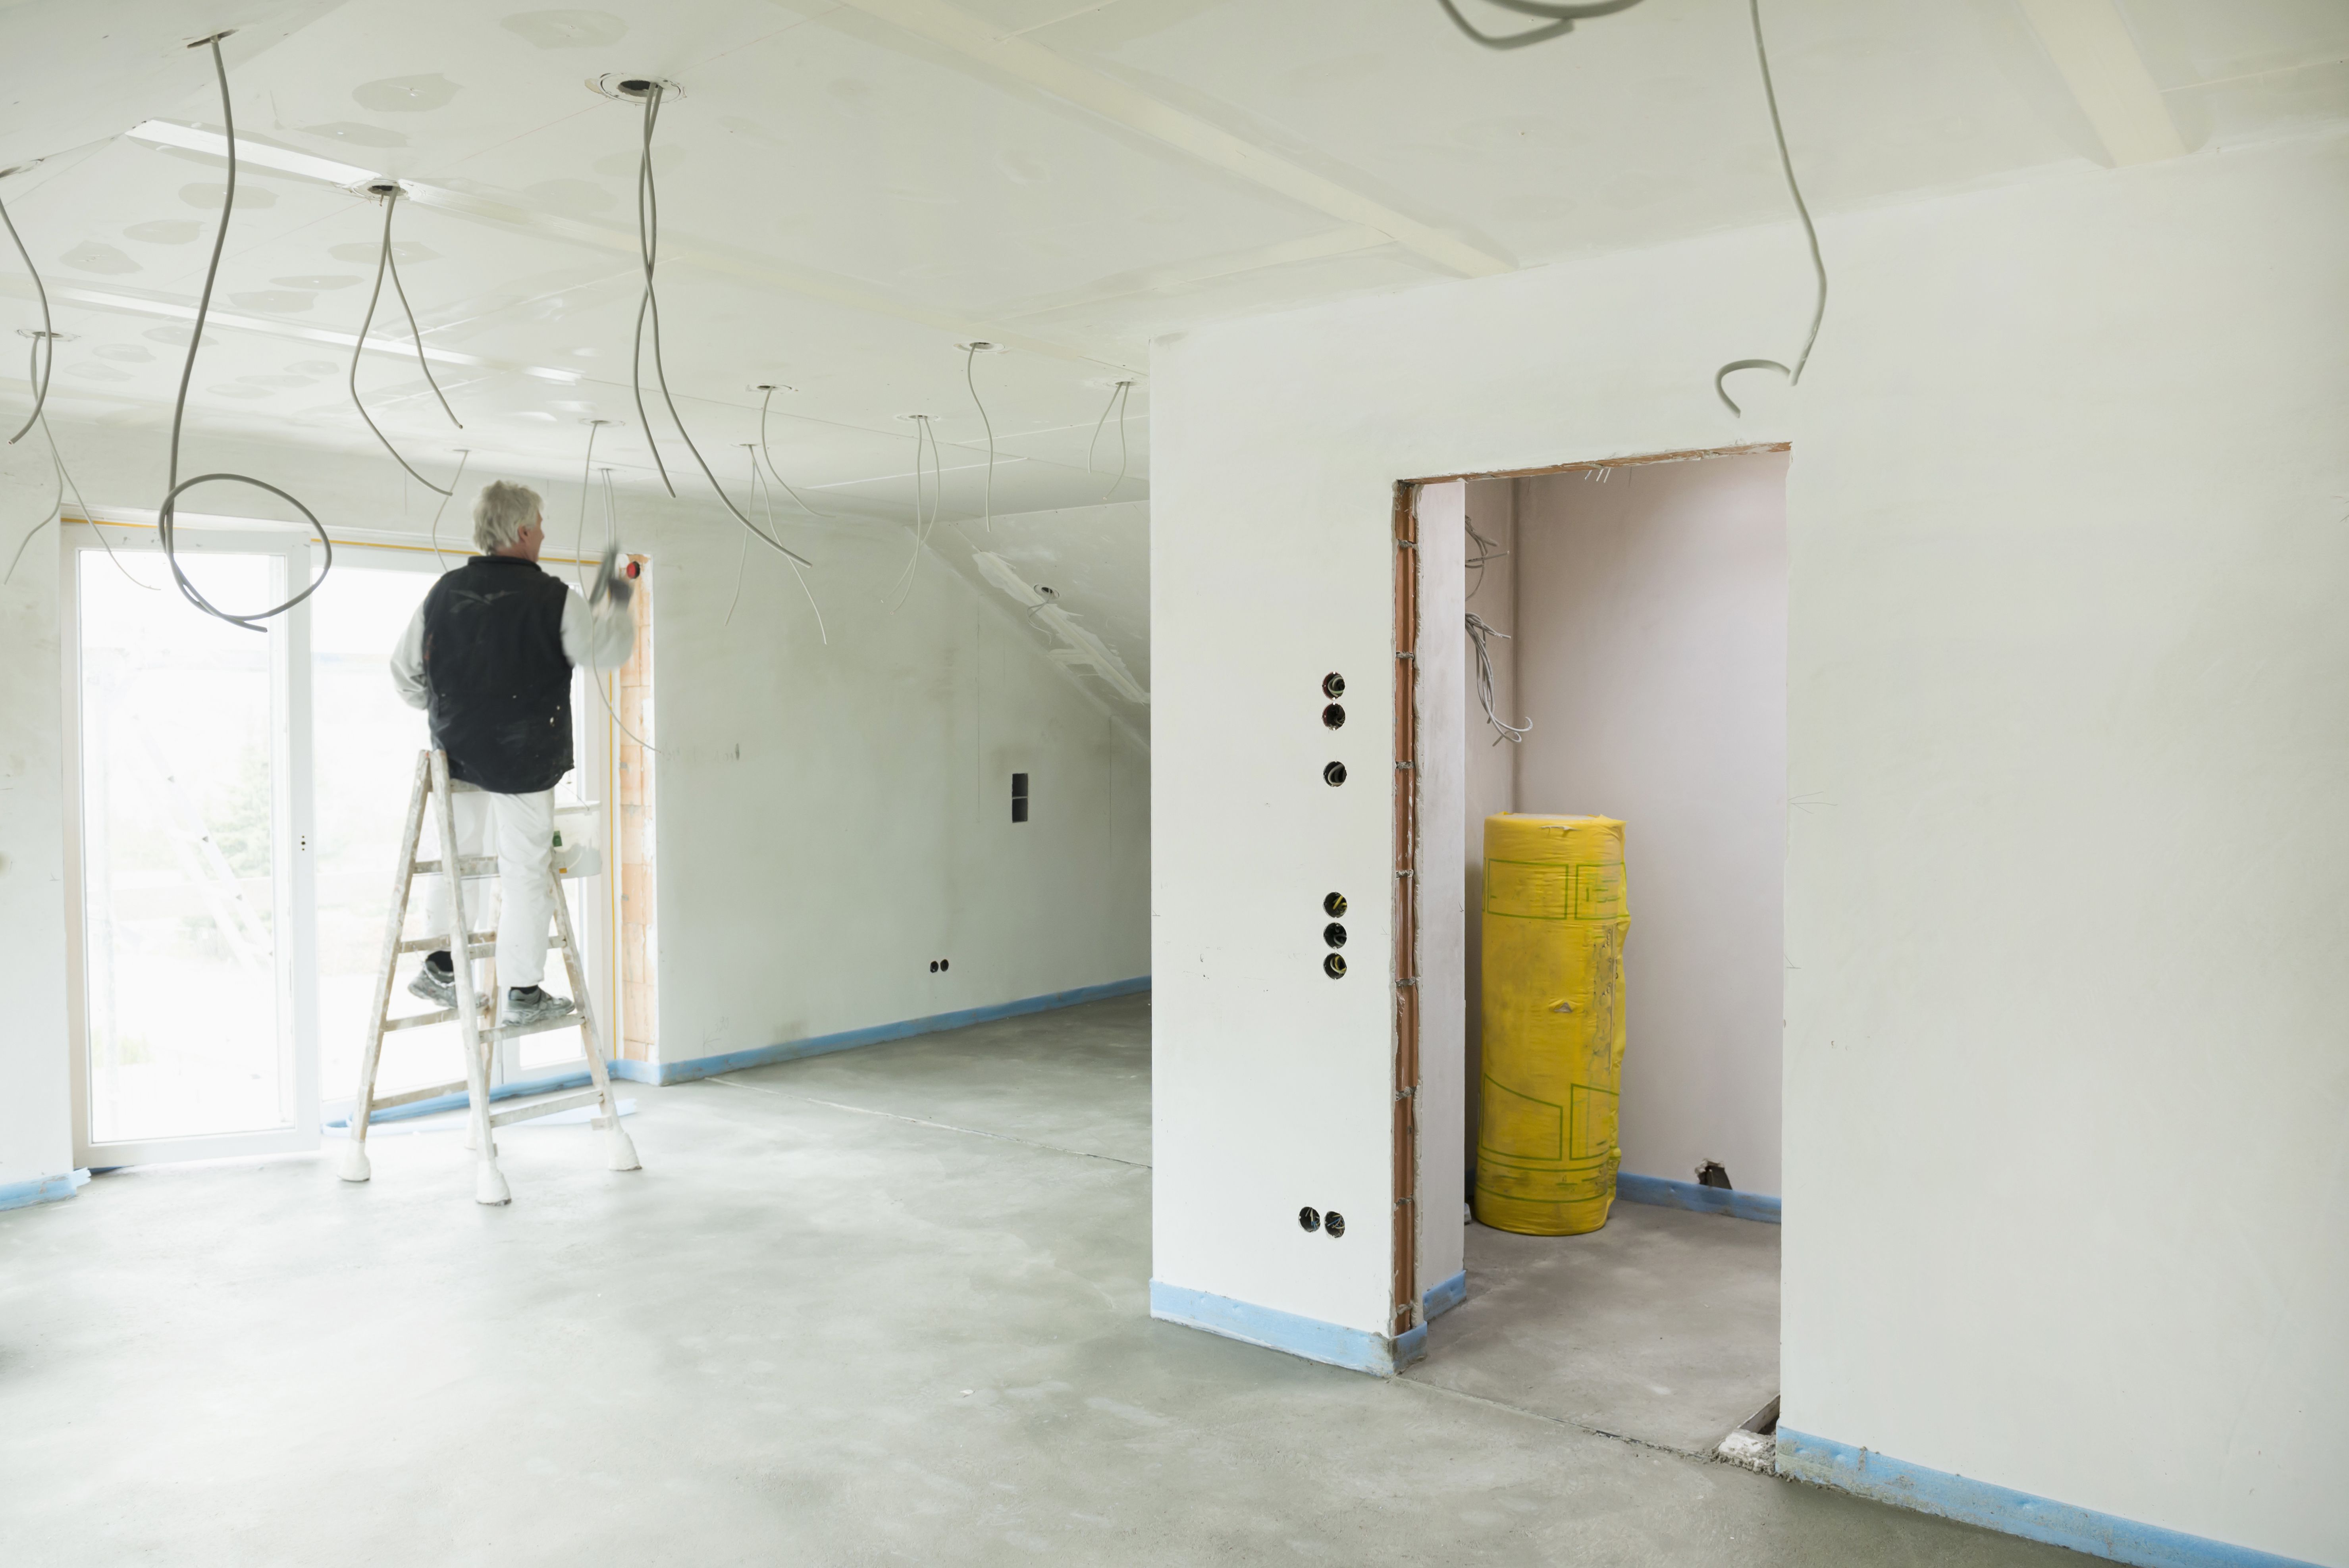 How to Install a New Electrical Junction Box